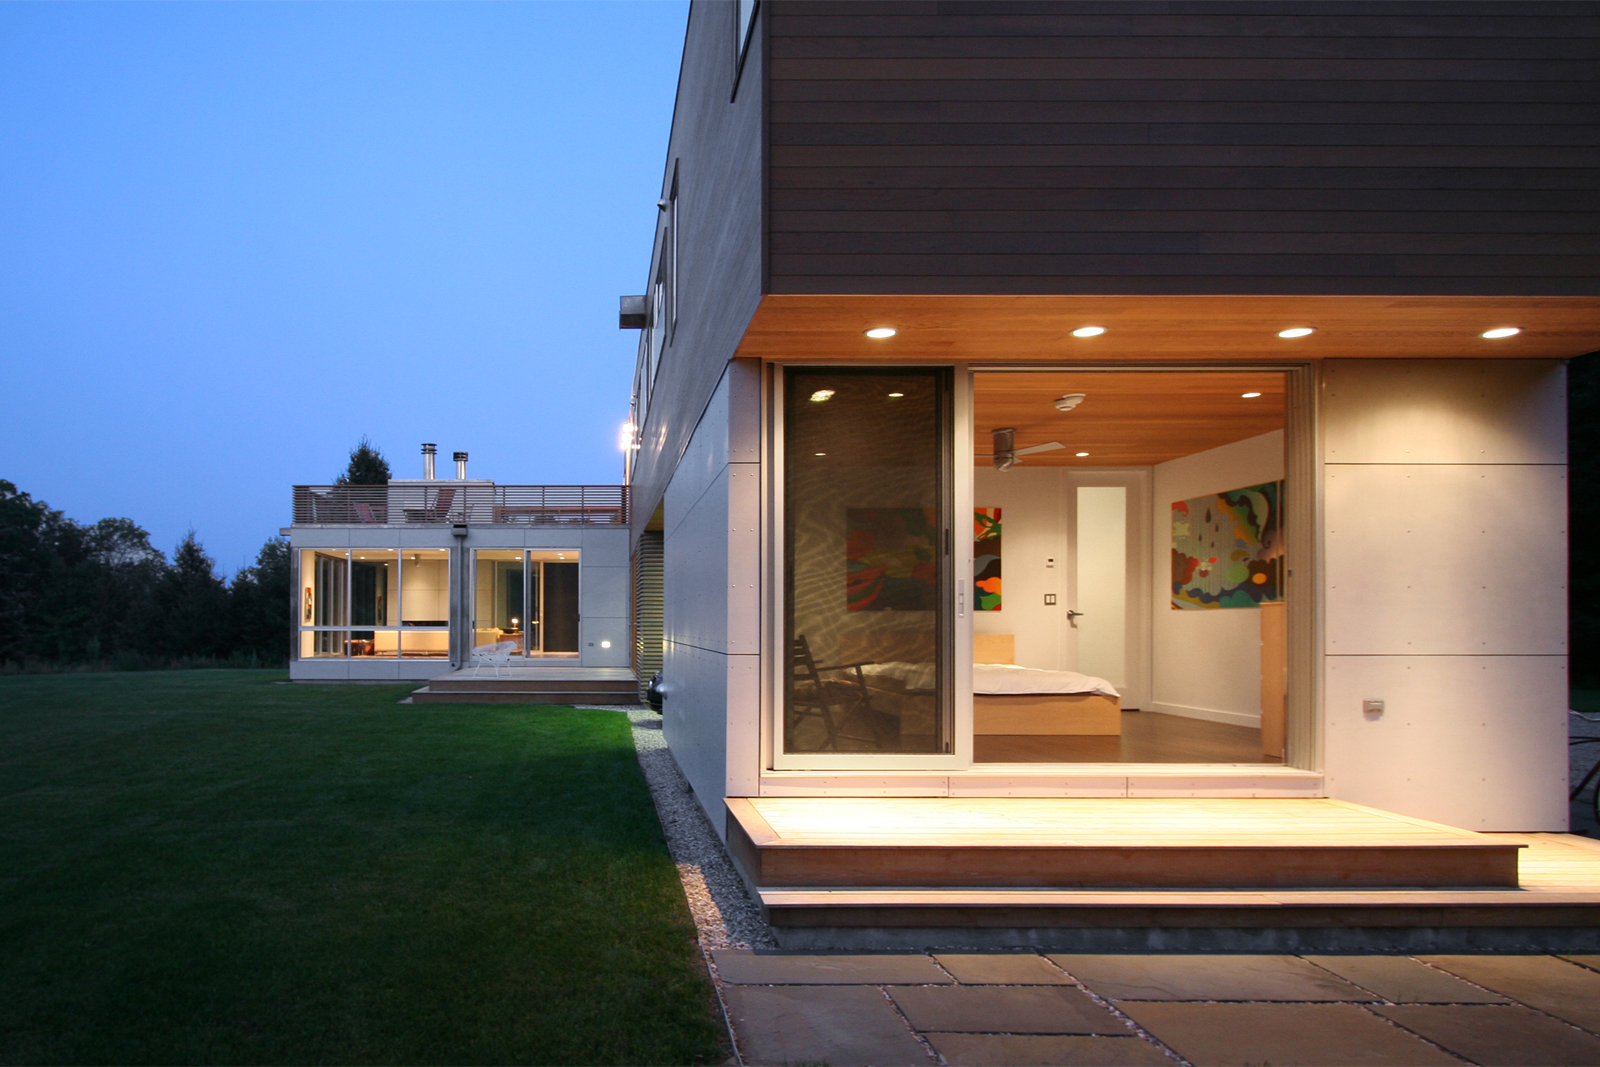 18-res4-resolution-4-architecture-modern-modular-home-prefab-sunset-ridge-house-exterior-dusk.jpg